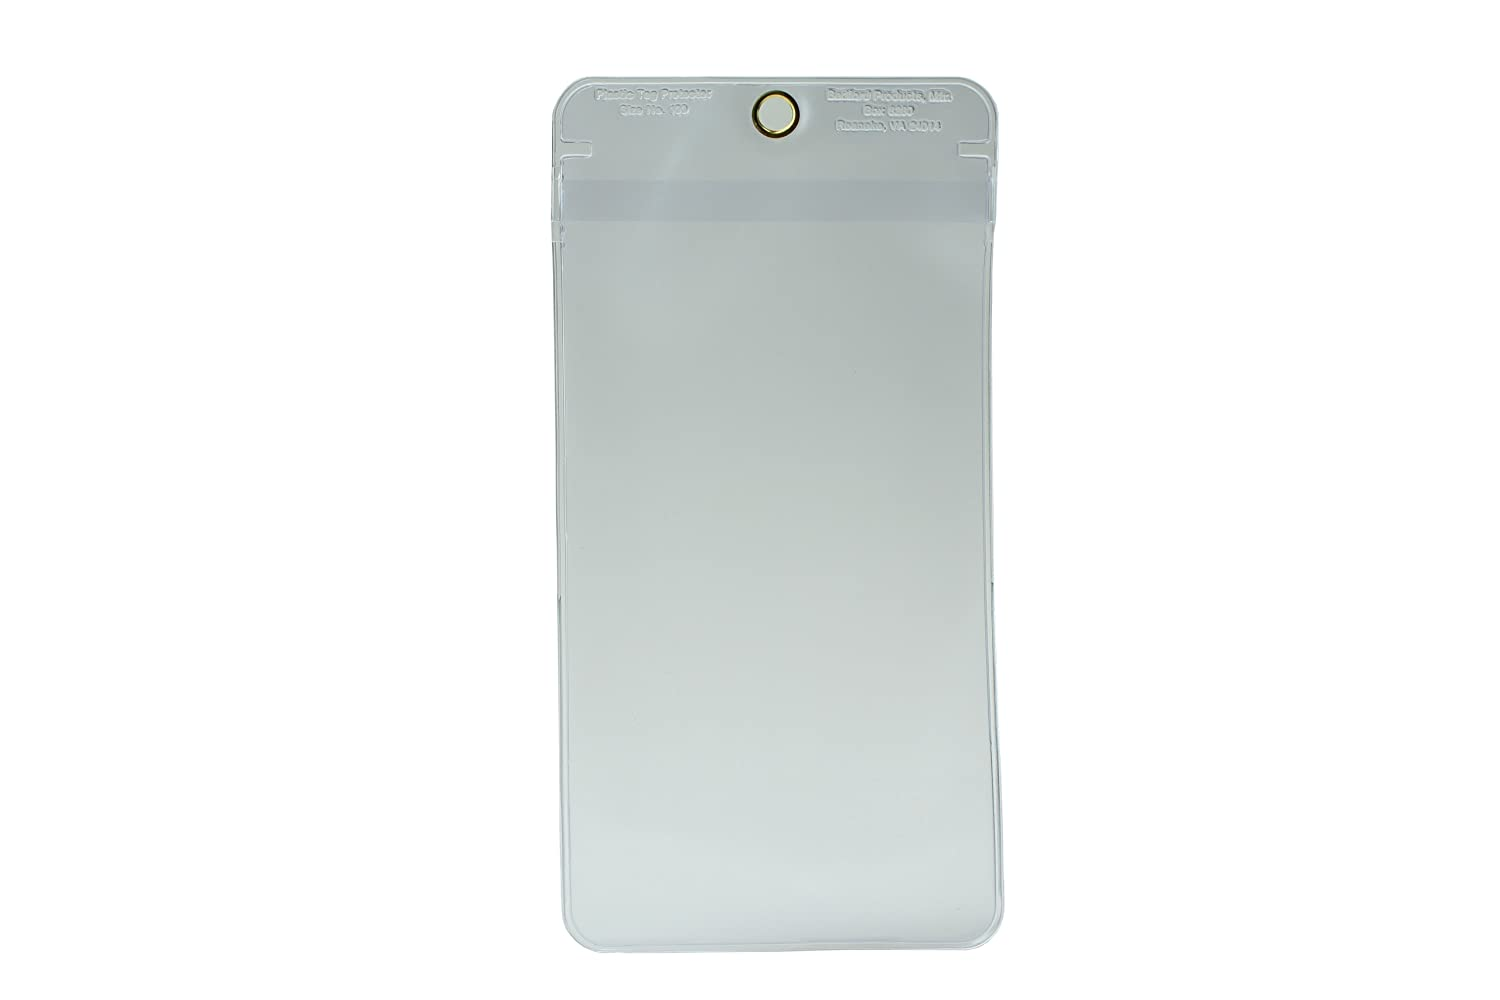 Clear Plastic Overflap Accuform Signs DTH717 Tag Pouch Both Sides Clear Metal Grommet Hang Hole and Overflap Top 7 Length x 4 Width Sealed Edges